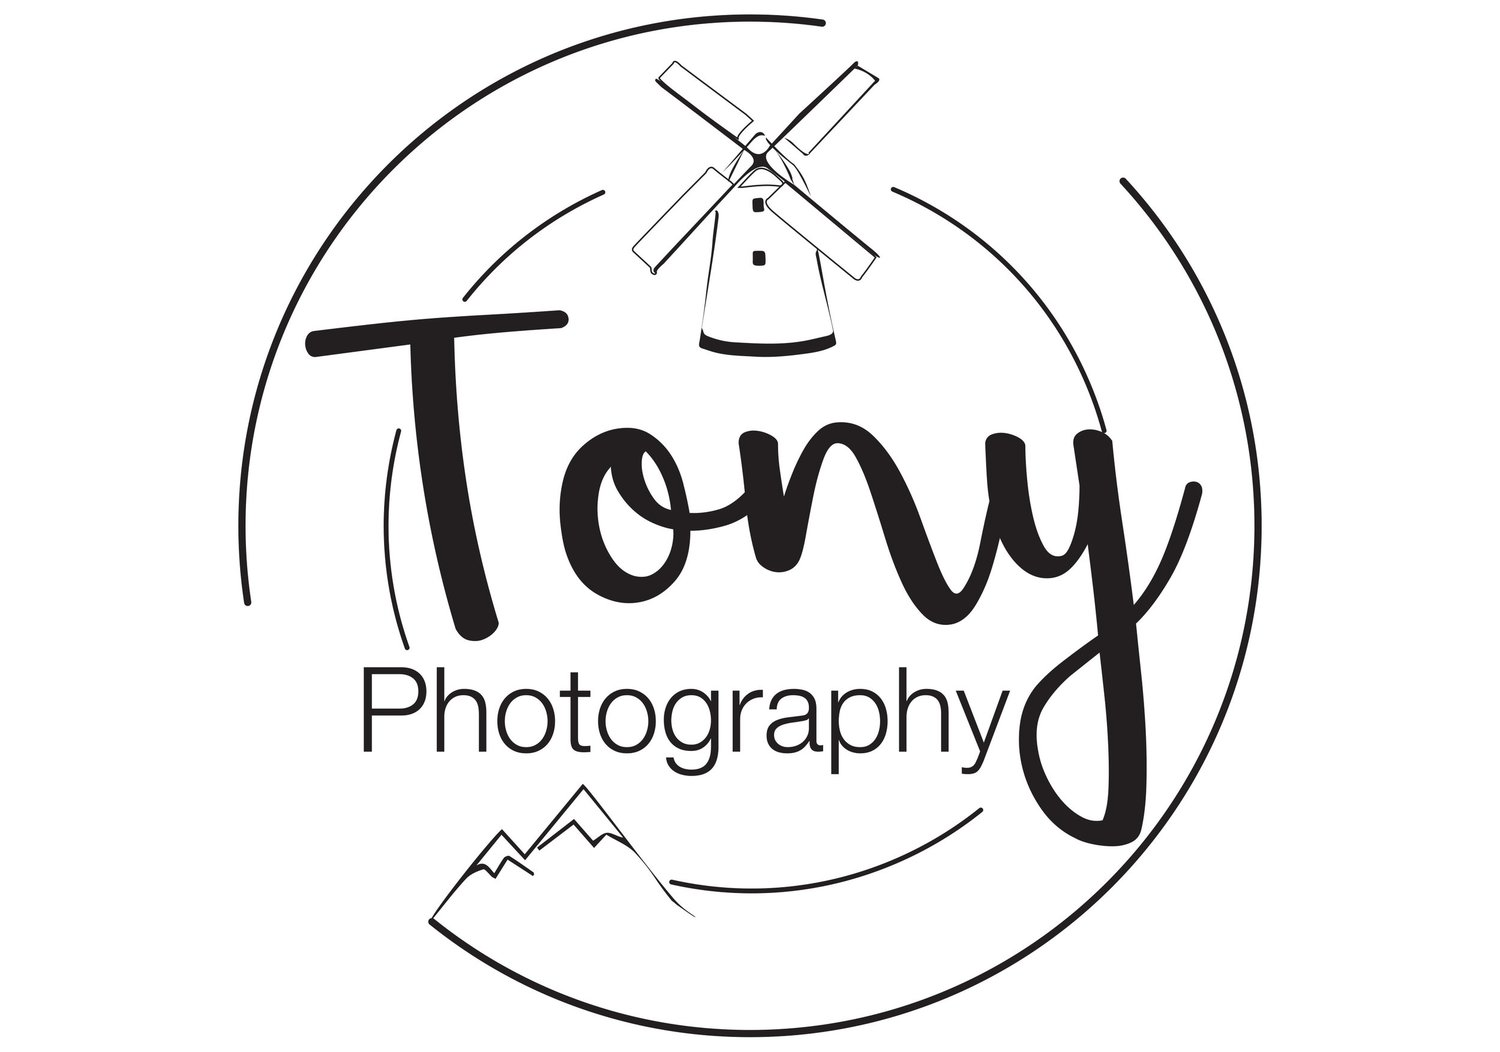 Tony Photography